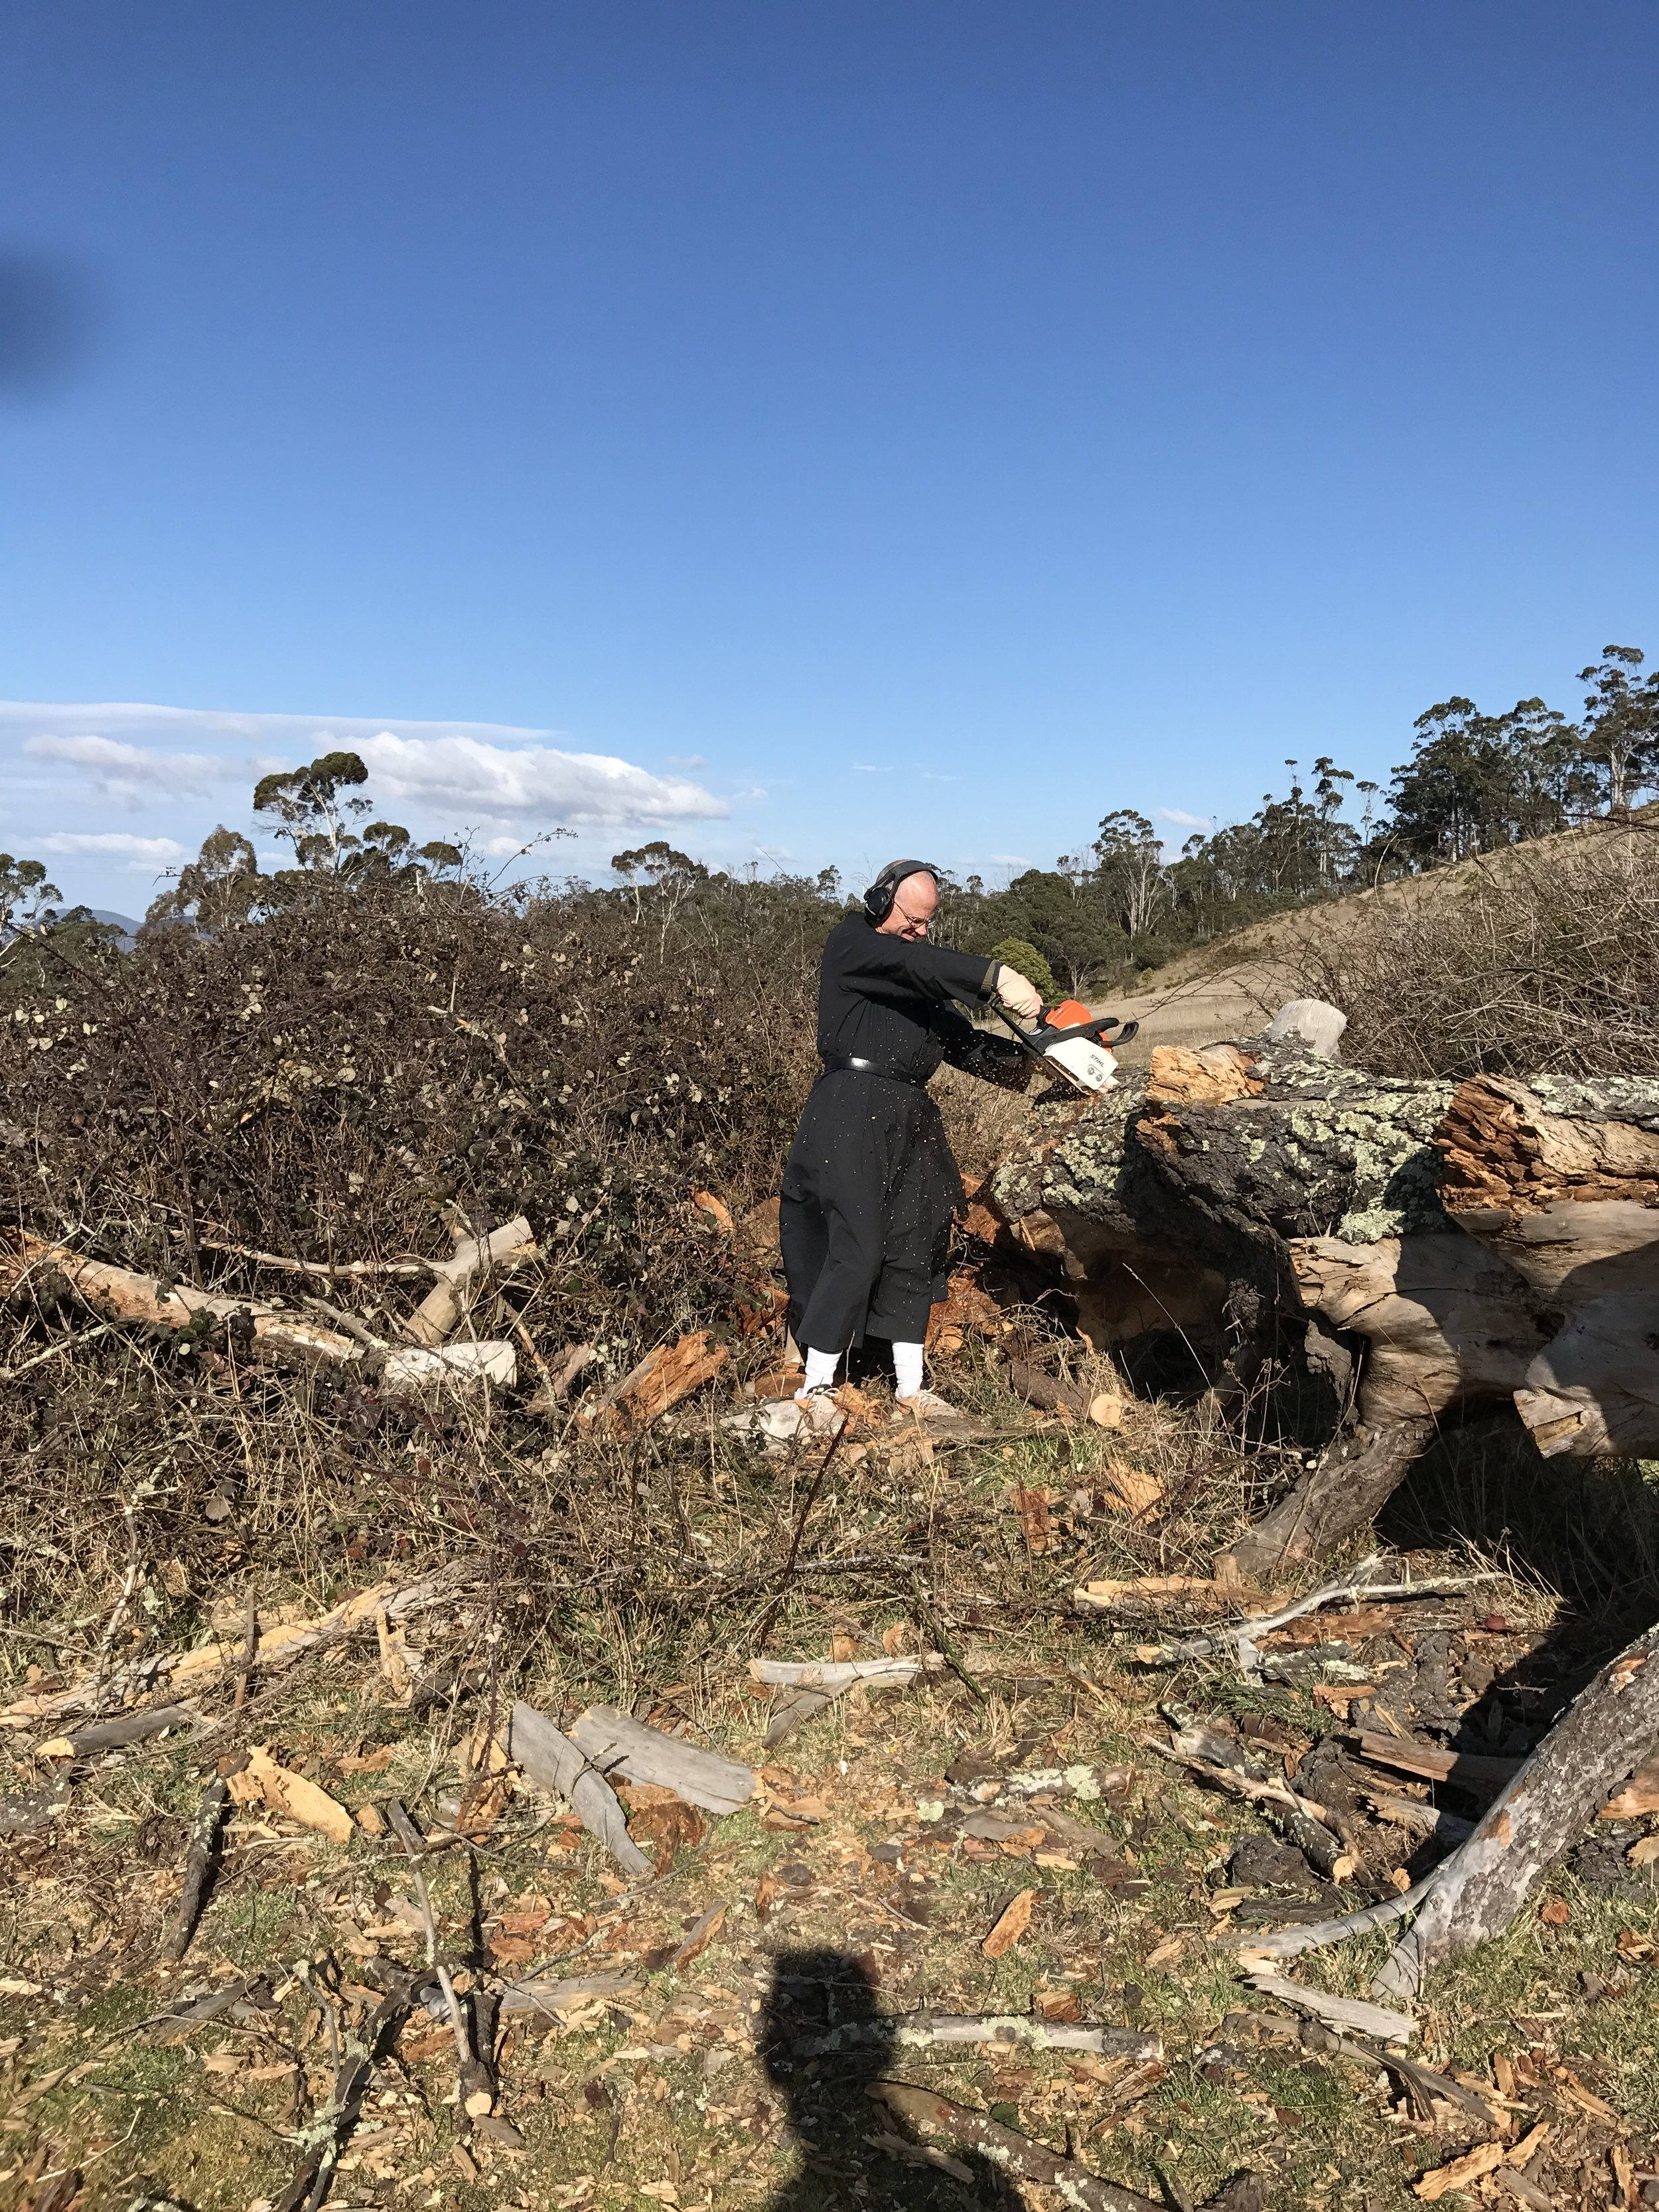 Father Prior having a great time with the chainsaw...